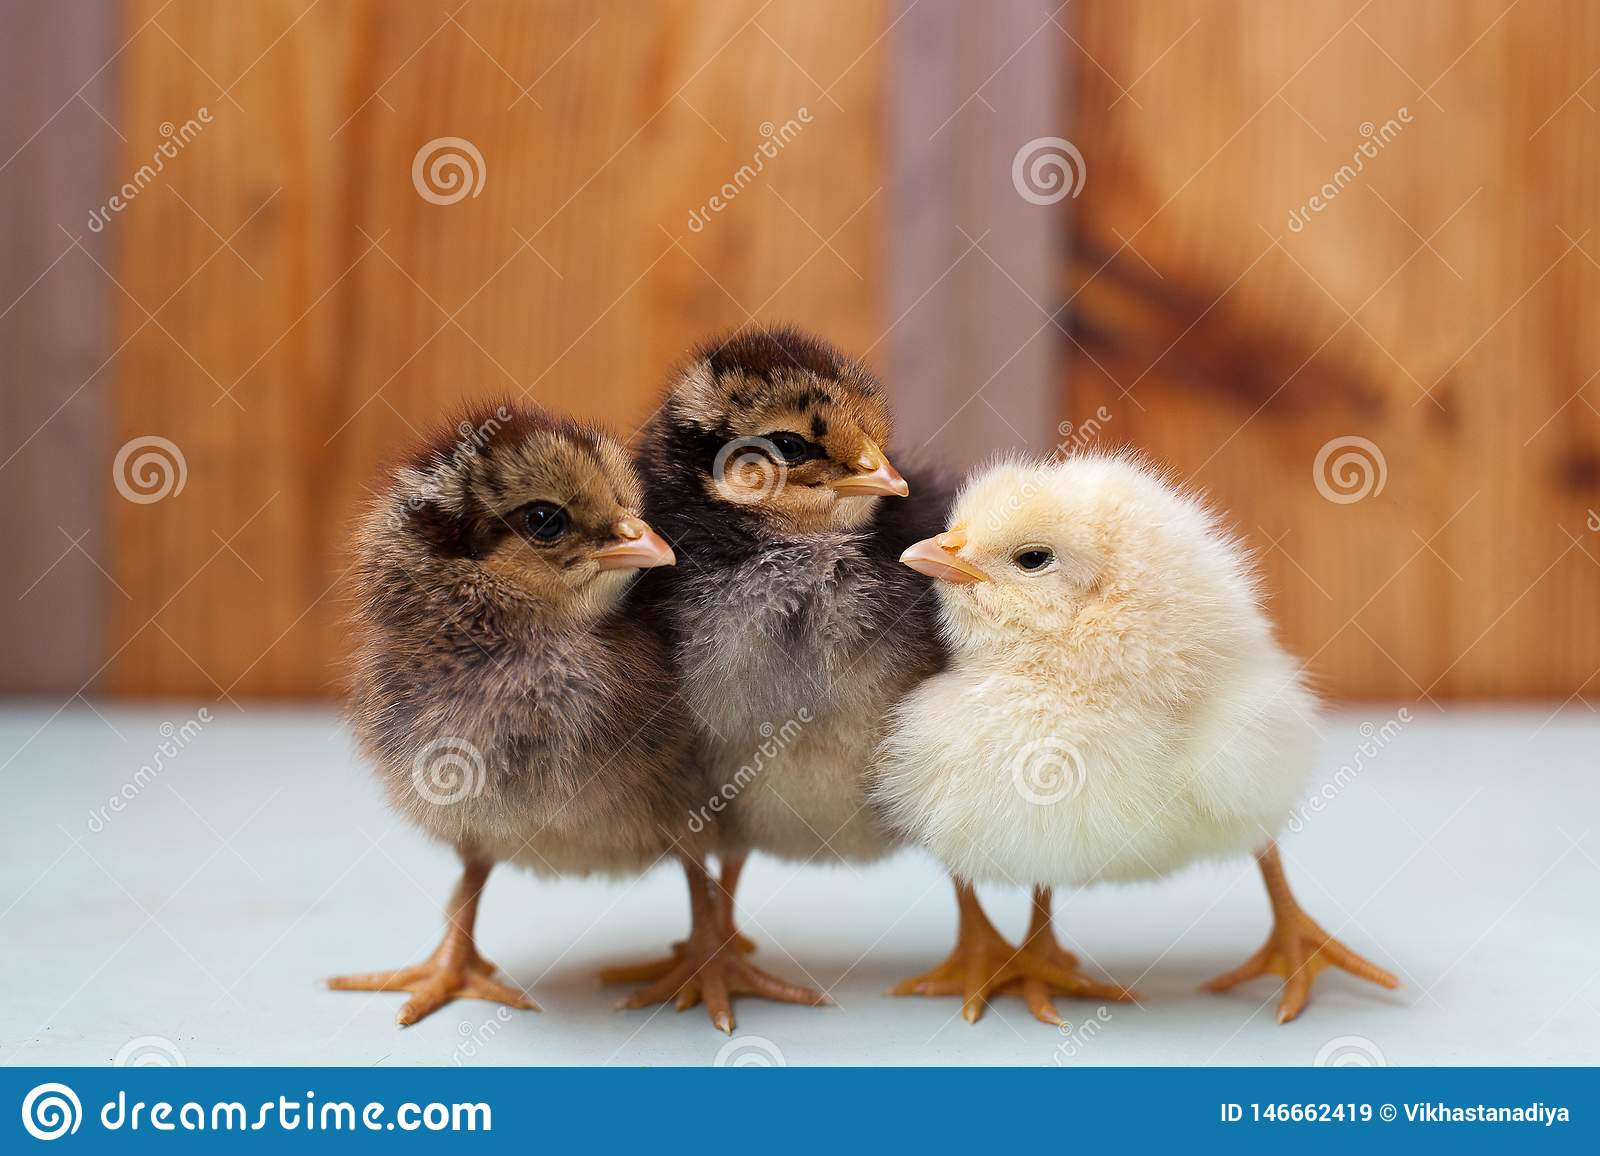 Three little chickens, two chicken and a cockerel